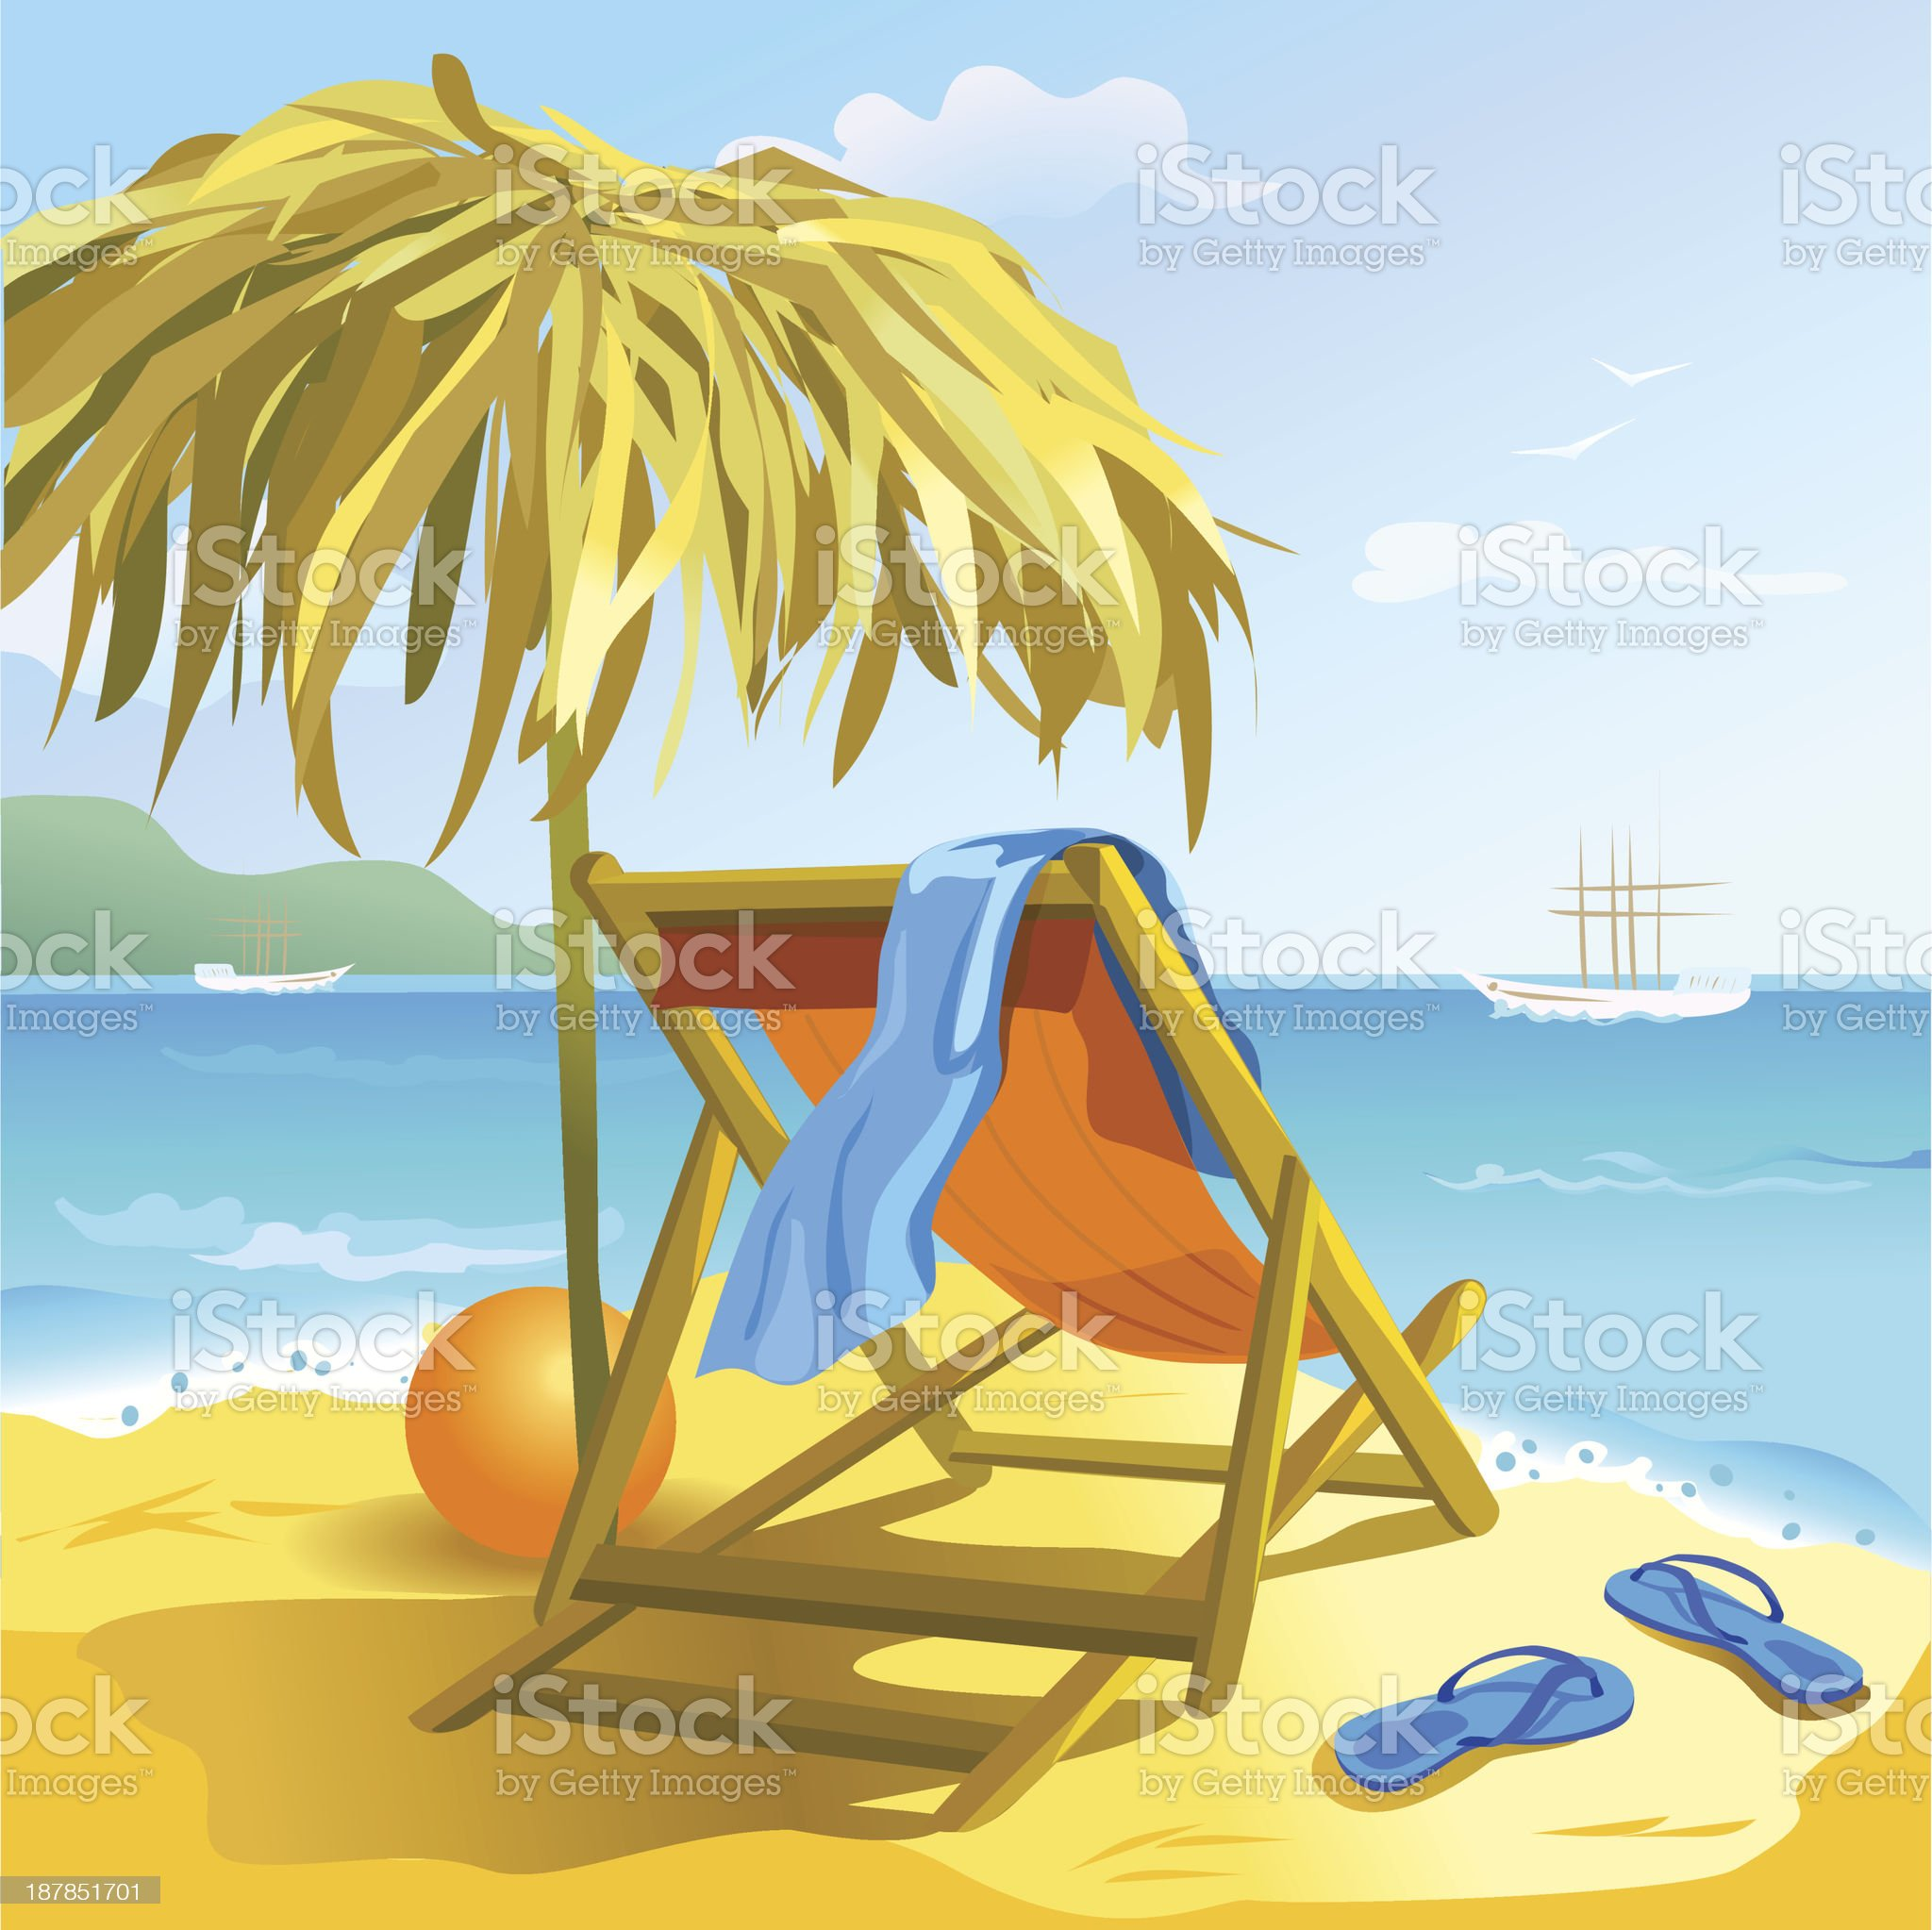 Chaise lounge on the beach royalty-free stock vector art